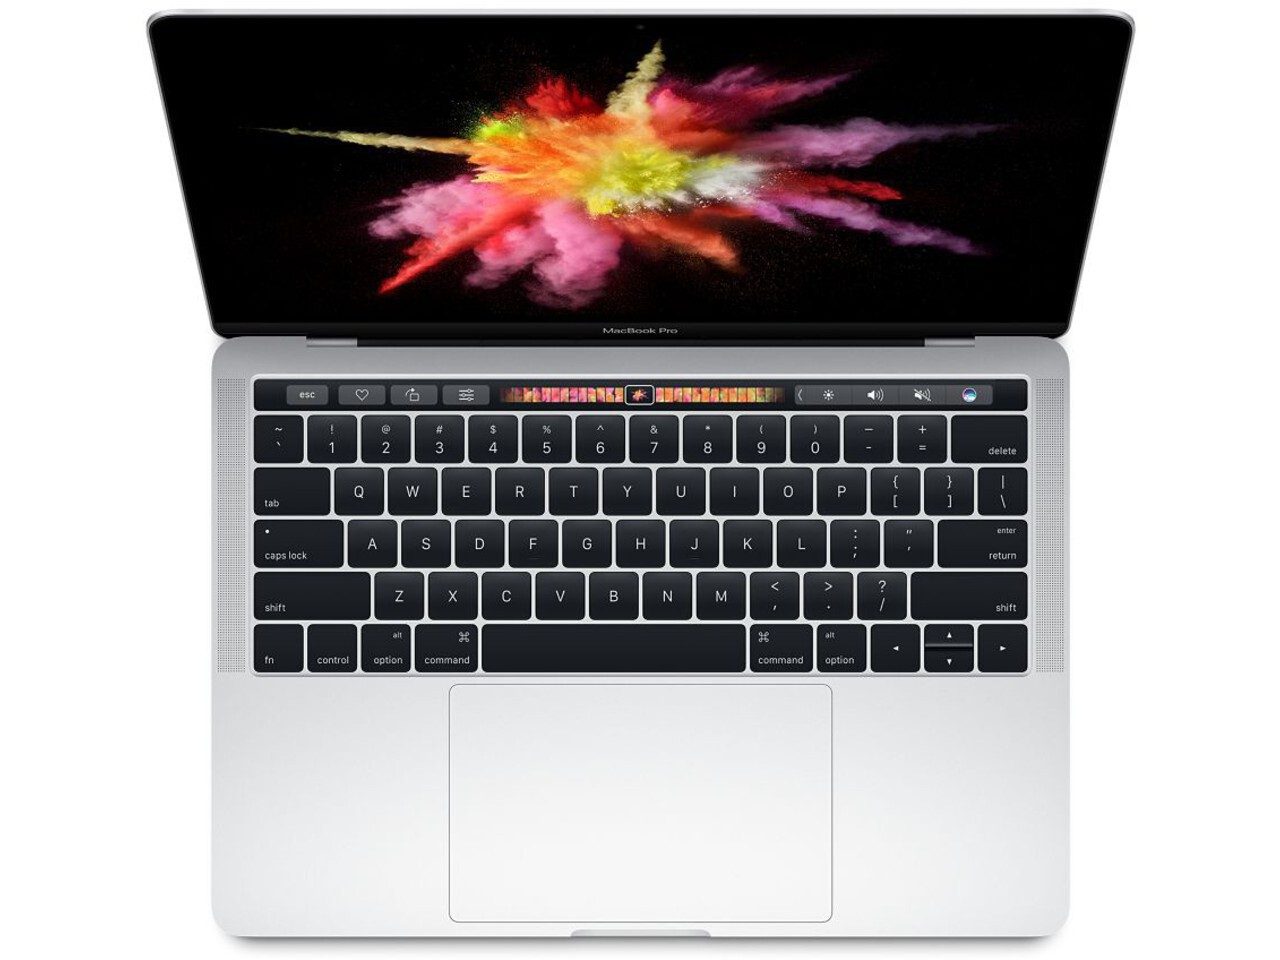 macbook pro 13 inch touch bar 2016 silver